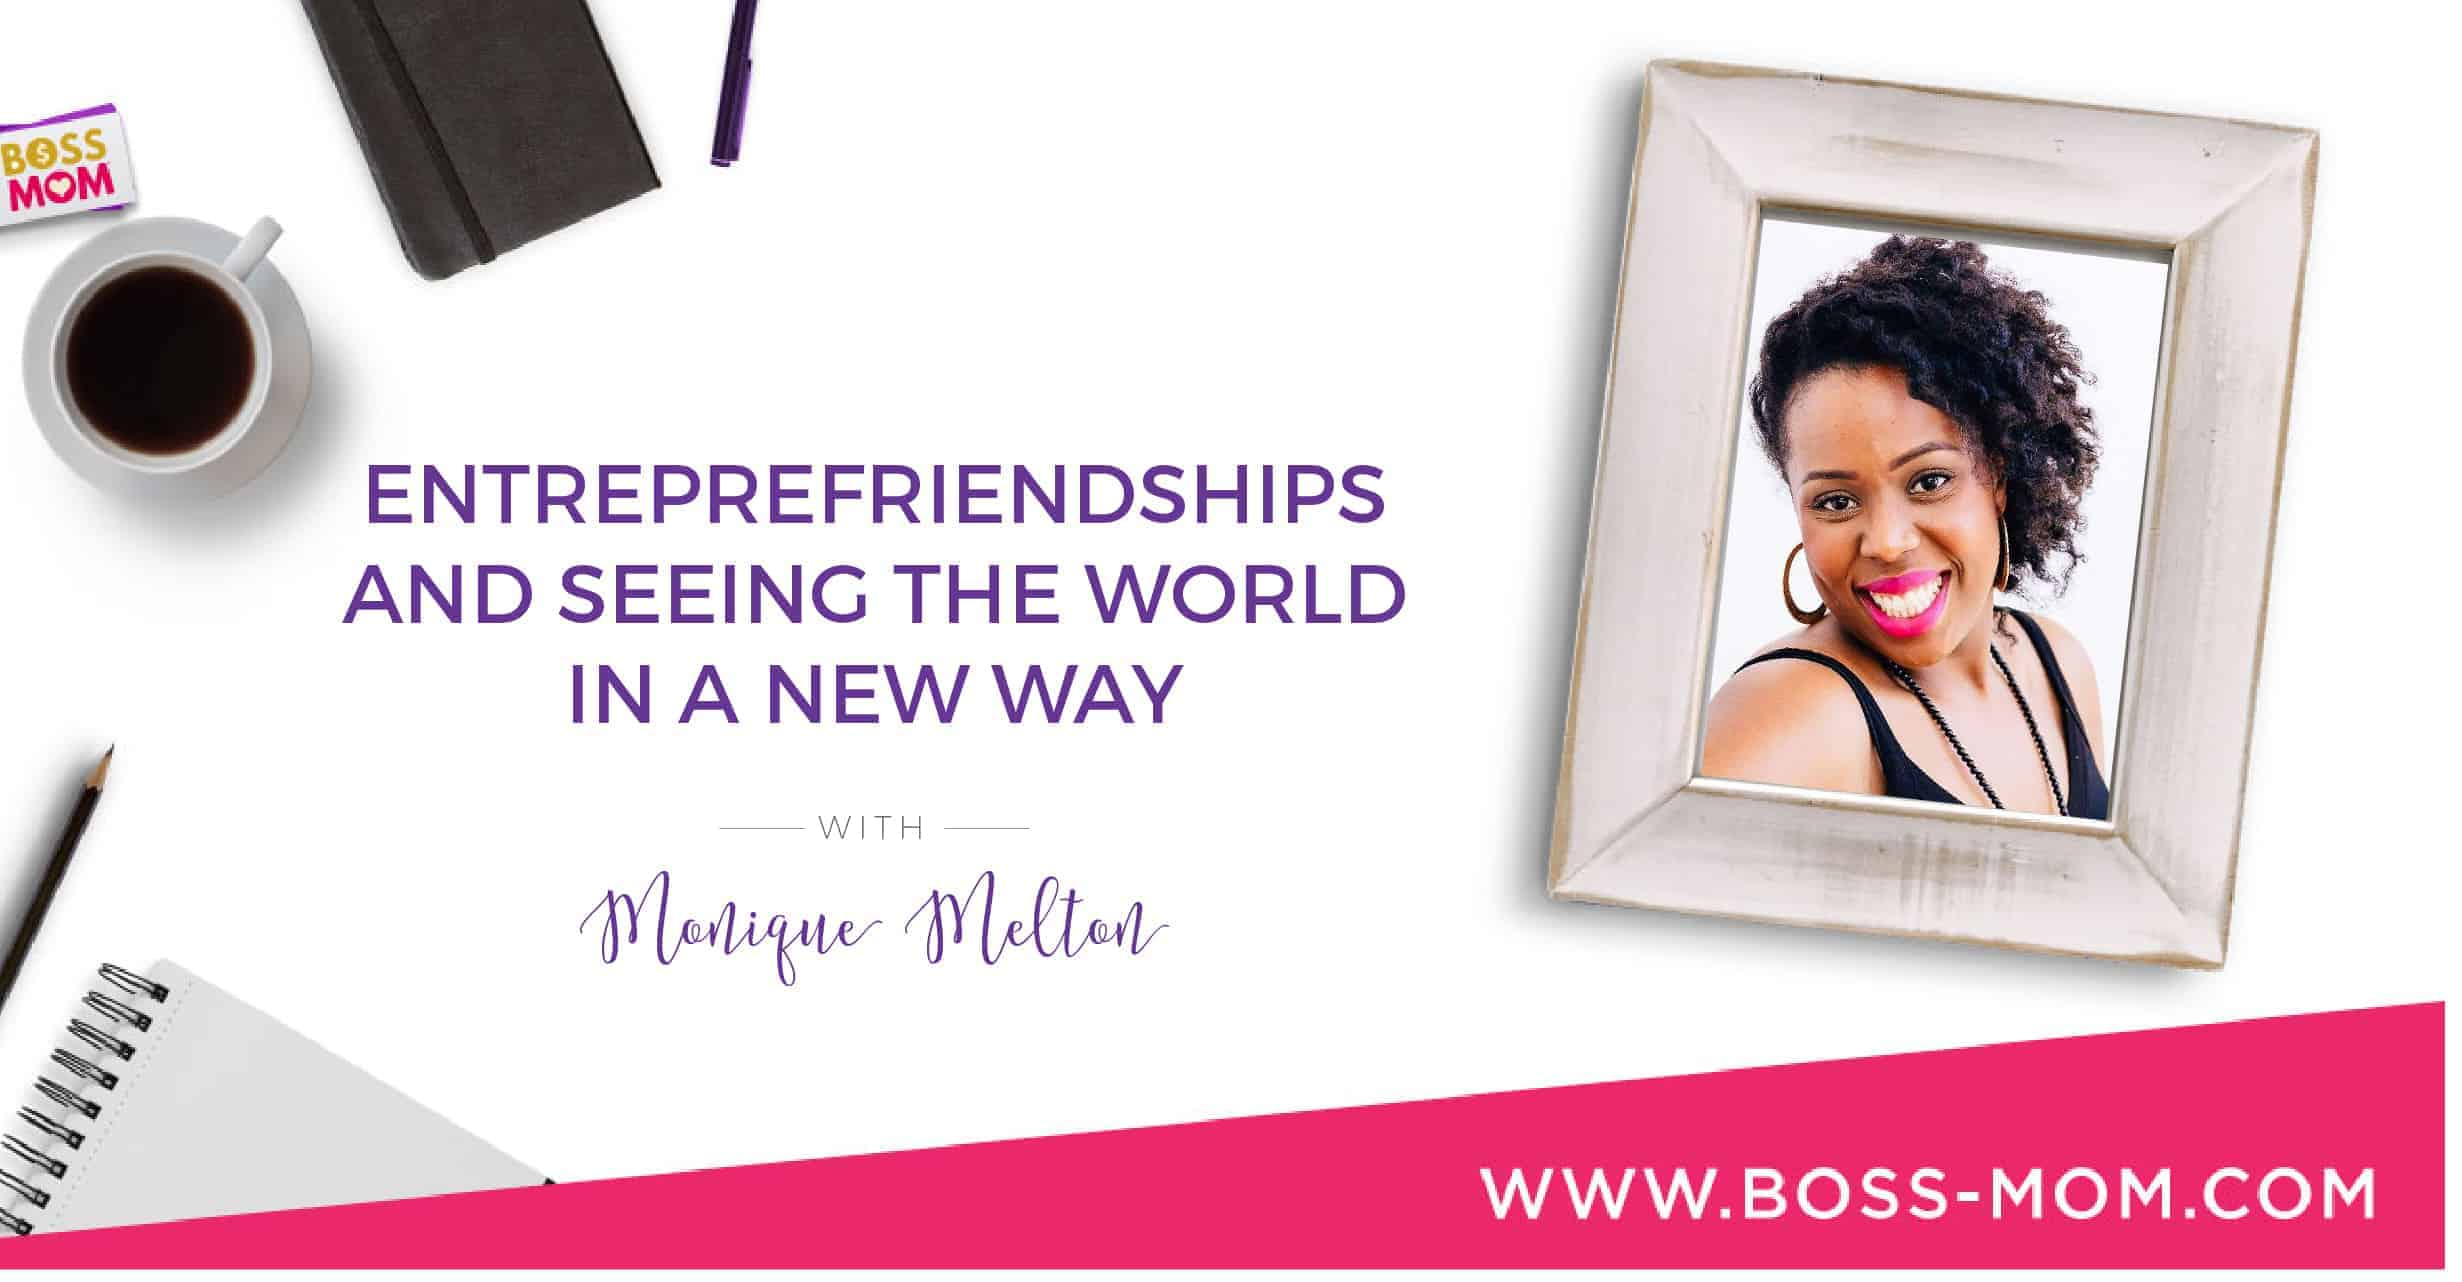 Episode 189: EntrepreFriendships and Seeing The World in a New Way with Monique Melton